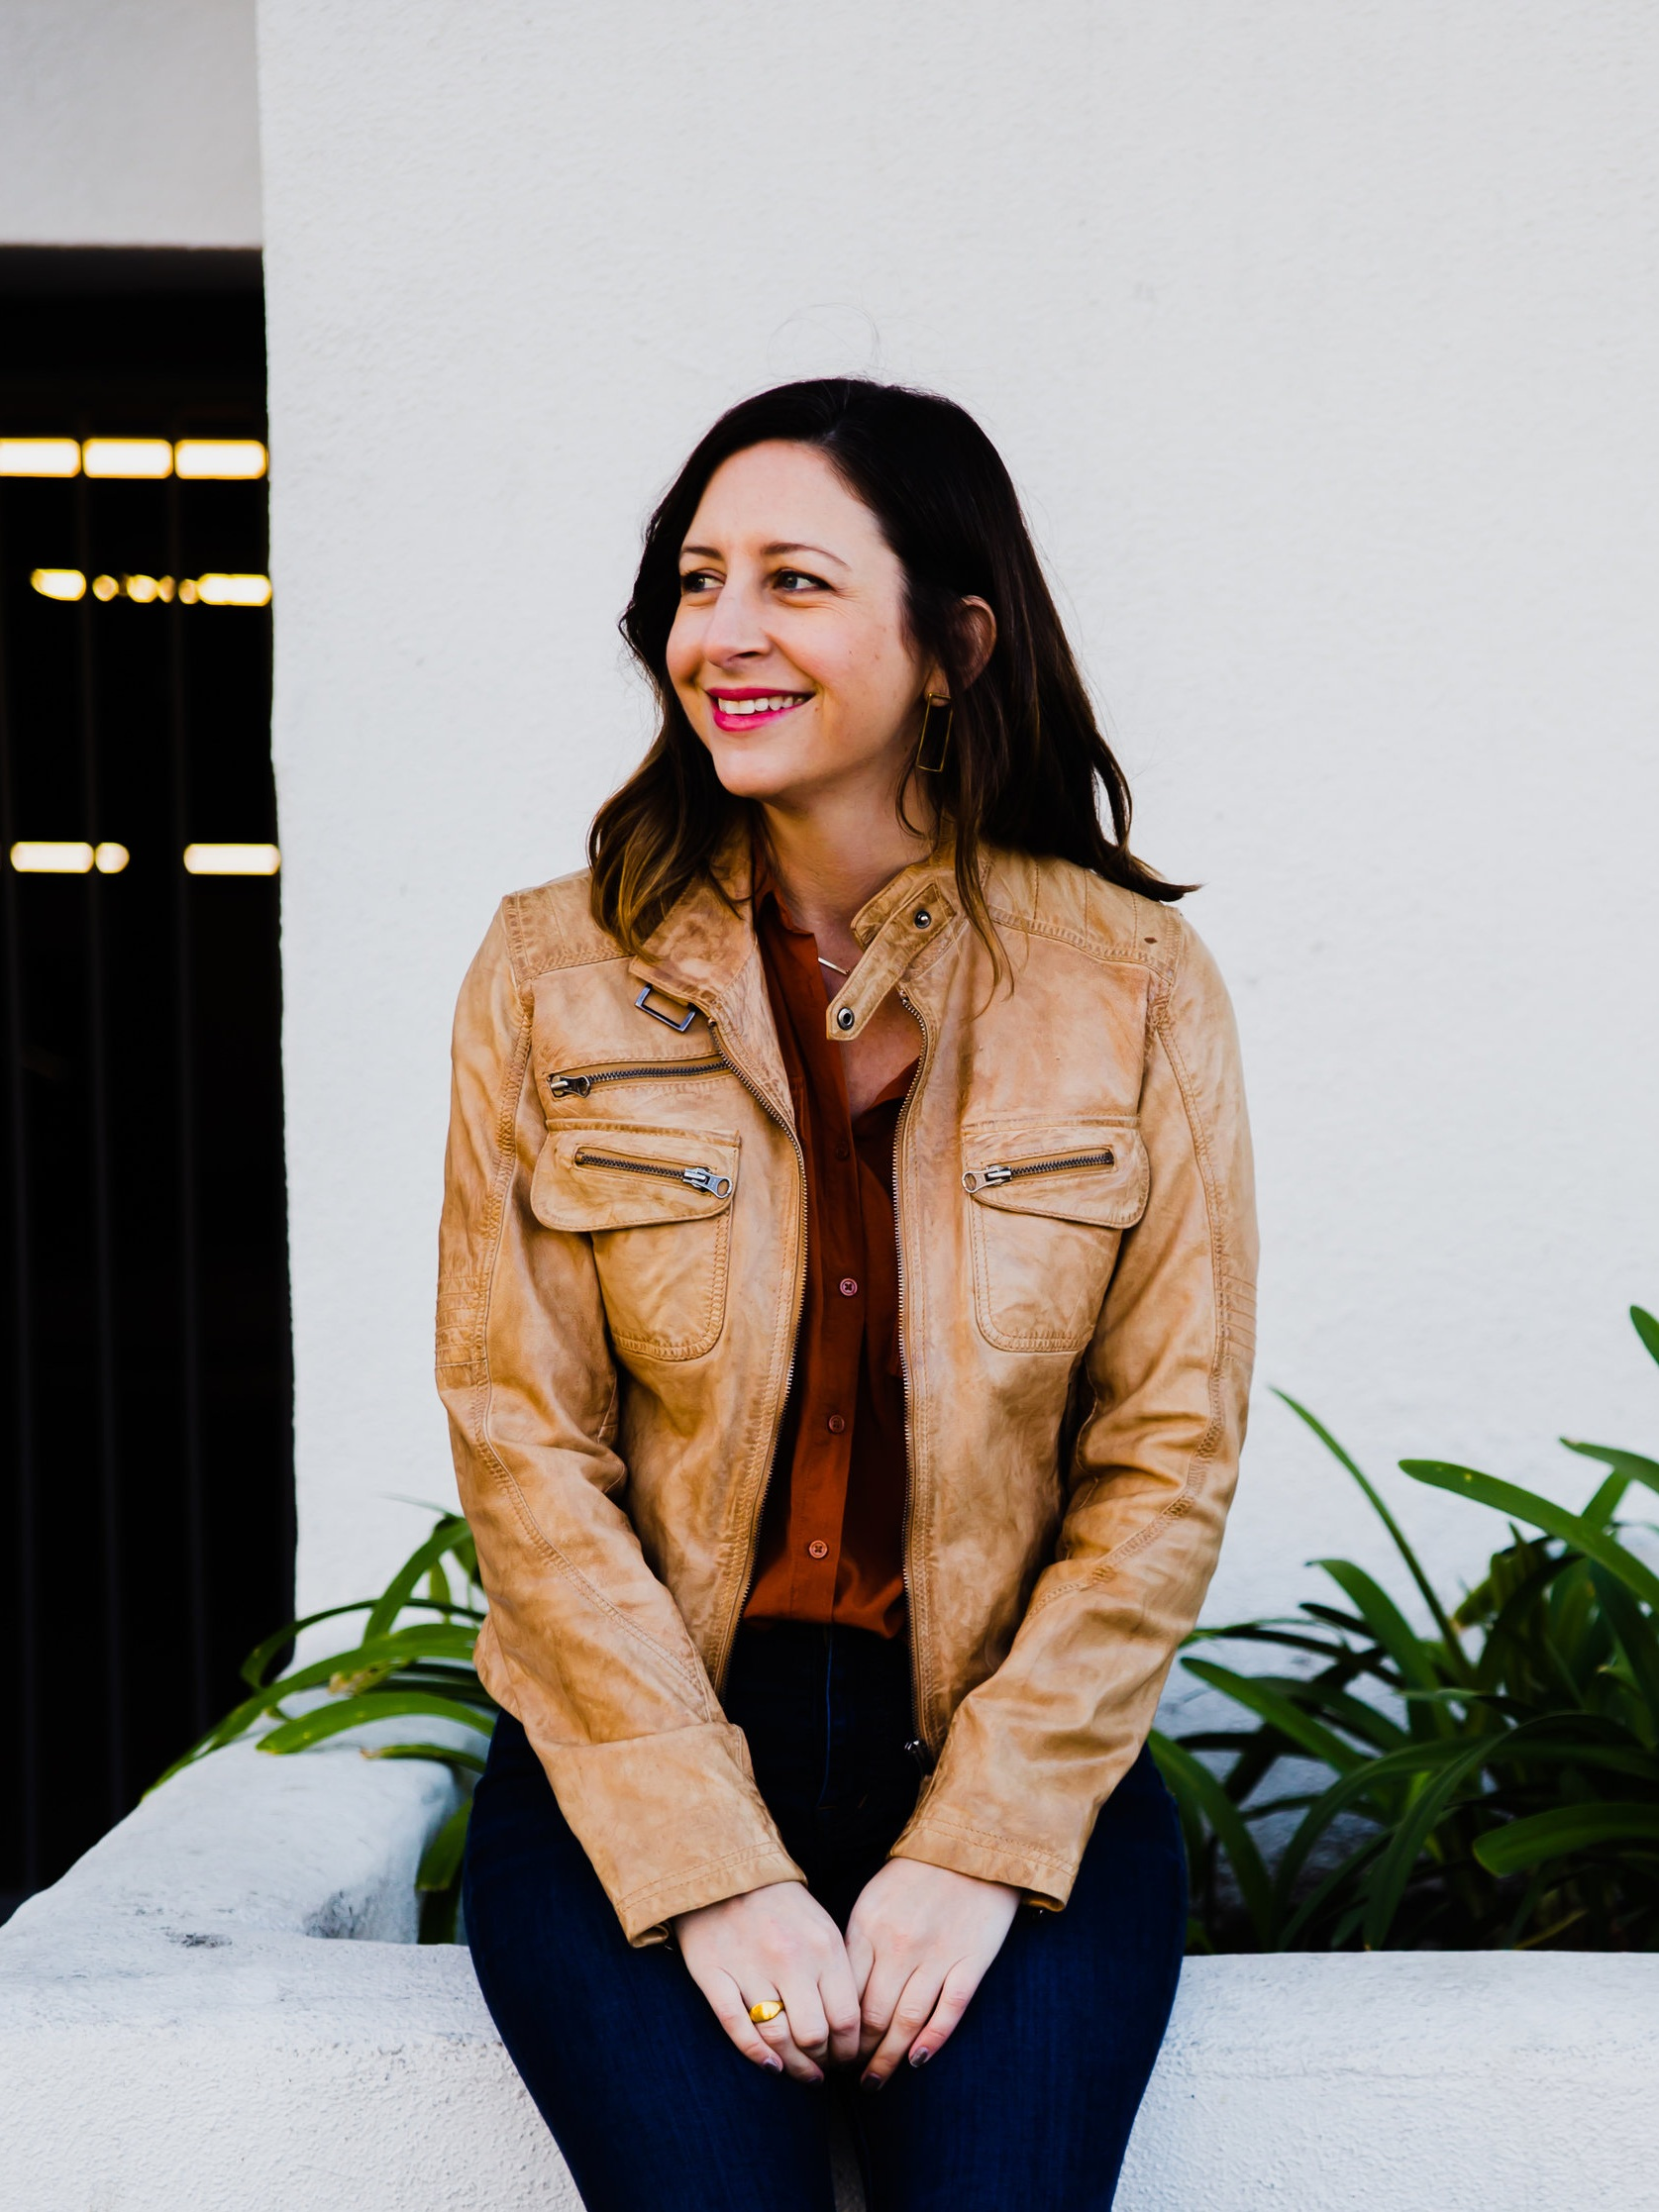 - I'm a freelance senior writer/ACD with 8 years of experience making ideas, stunts, and stories come to life, and I'm always up for a new challenge.Also, you know I'm legit because there's a picture of me on my site.You can see some of my non-advertising writing here.Say hi: catharine.ogletree (at) gmail.com